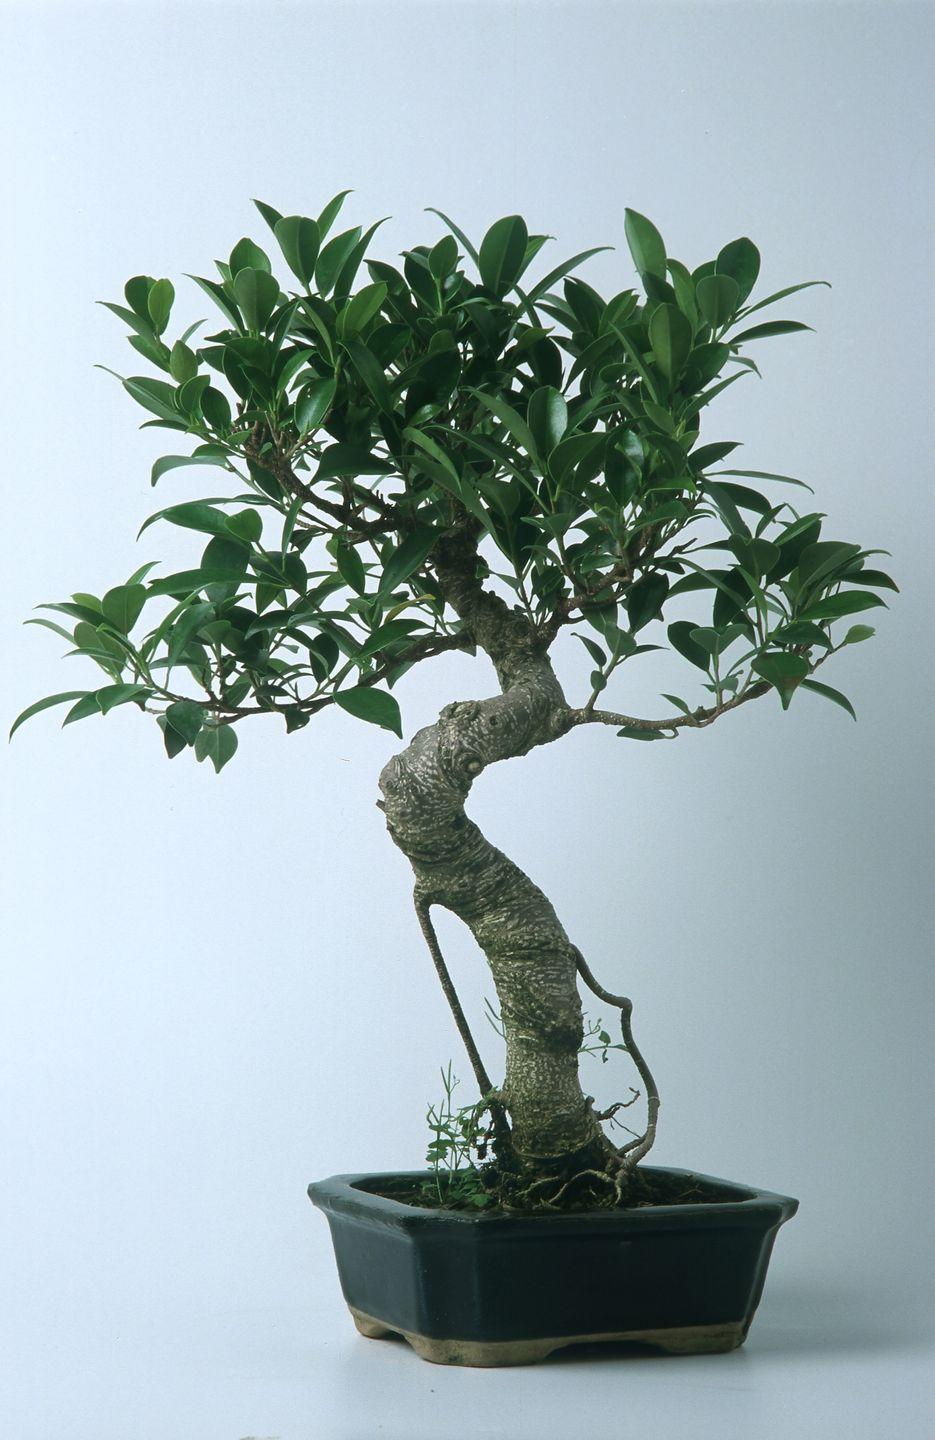 """<p><a class=""""link rapid-noclick-resp"""" href=""""https://www.amazon.com/Brussels-Golden-Ficus-Indoor-Bonsai/dp/B0000DGF9V?tag=syn-yahoo-20&ascsubtag=%5Bartid%7C10052.g.3284%5Bsrc%7Cyahoo-us"""" rel=""""nofollow noopener"""" target=""""_blank"""" data-ylk=""""slk:Shop Now"""">Shop Now</a></p><p><em>$34, Amazon</em><br></p><p>Bonsai is the Japanese art of pruning in which small trees mimic the scale and shape of a full-size tree. Bonsais are perfect for apartments because of their size, and the ficus bonsai is one of the lowest-maintenance ones. The ficus bonsai thrives in warm environments, so indoors is ideal. They require high sunlight and can survive occasional over- or underwatering.</p>"""